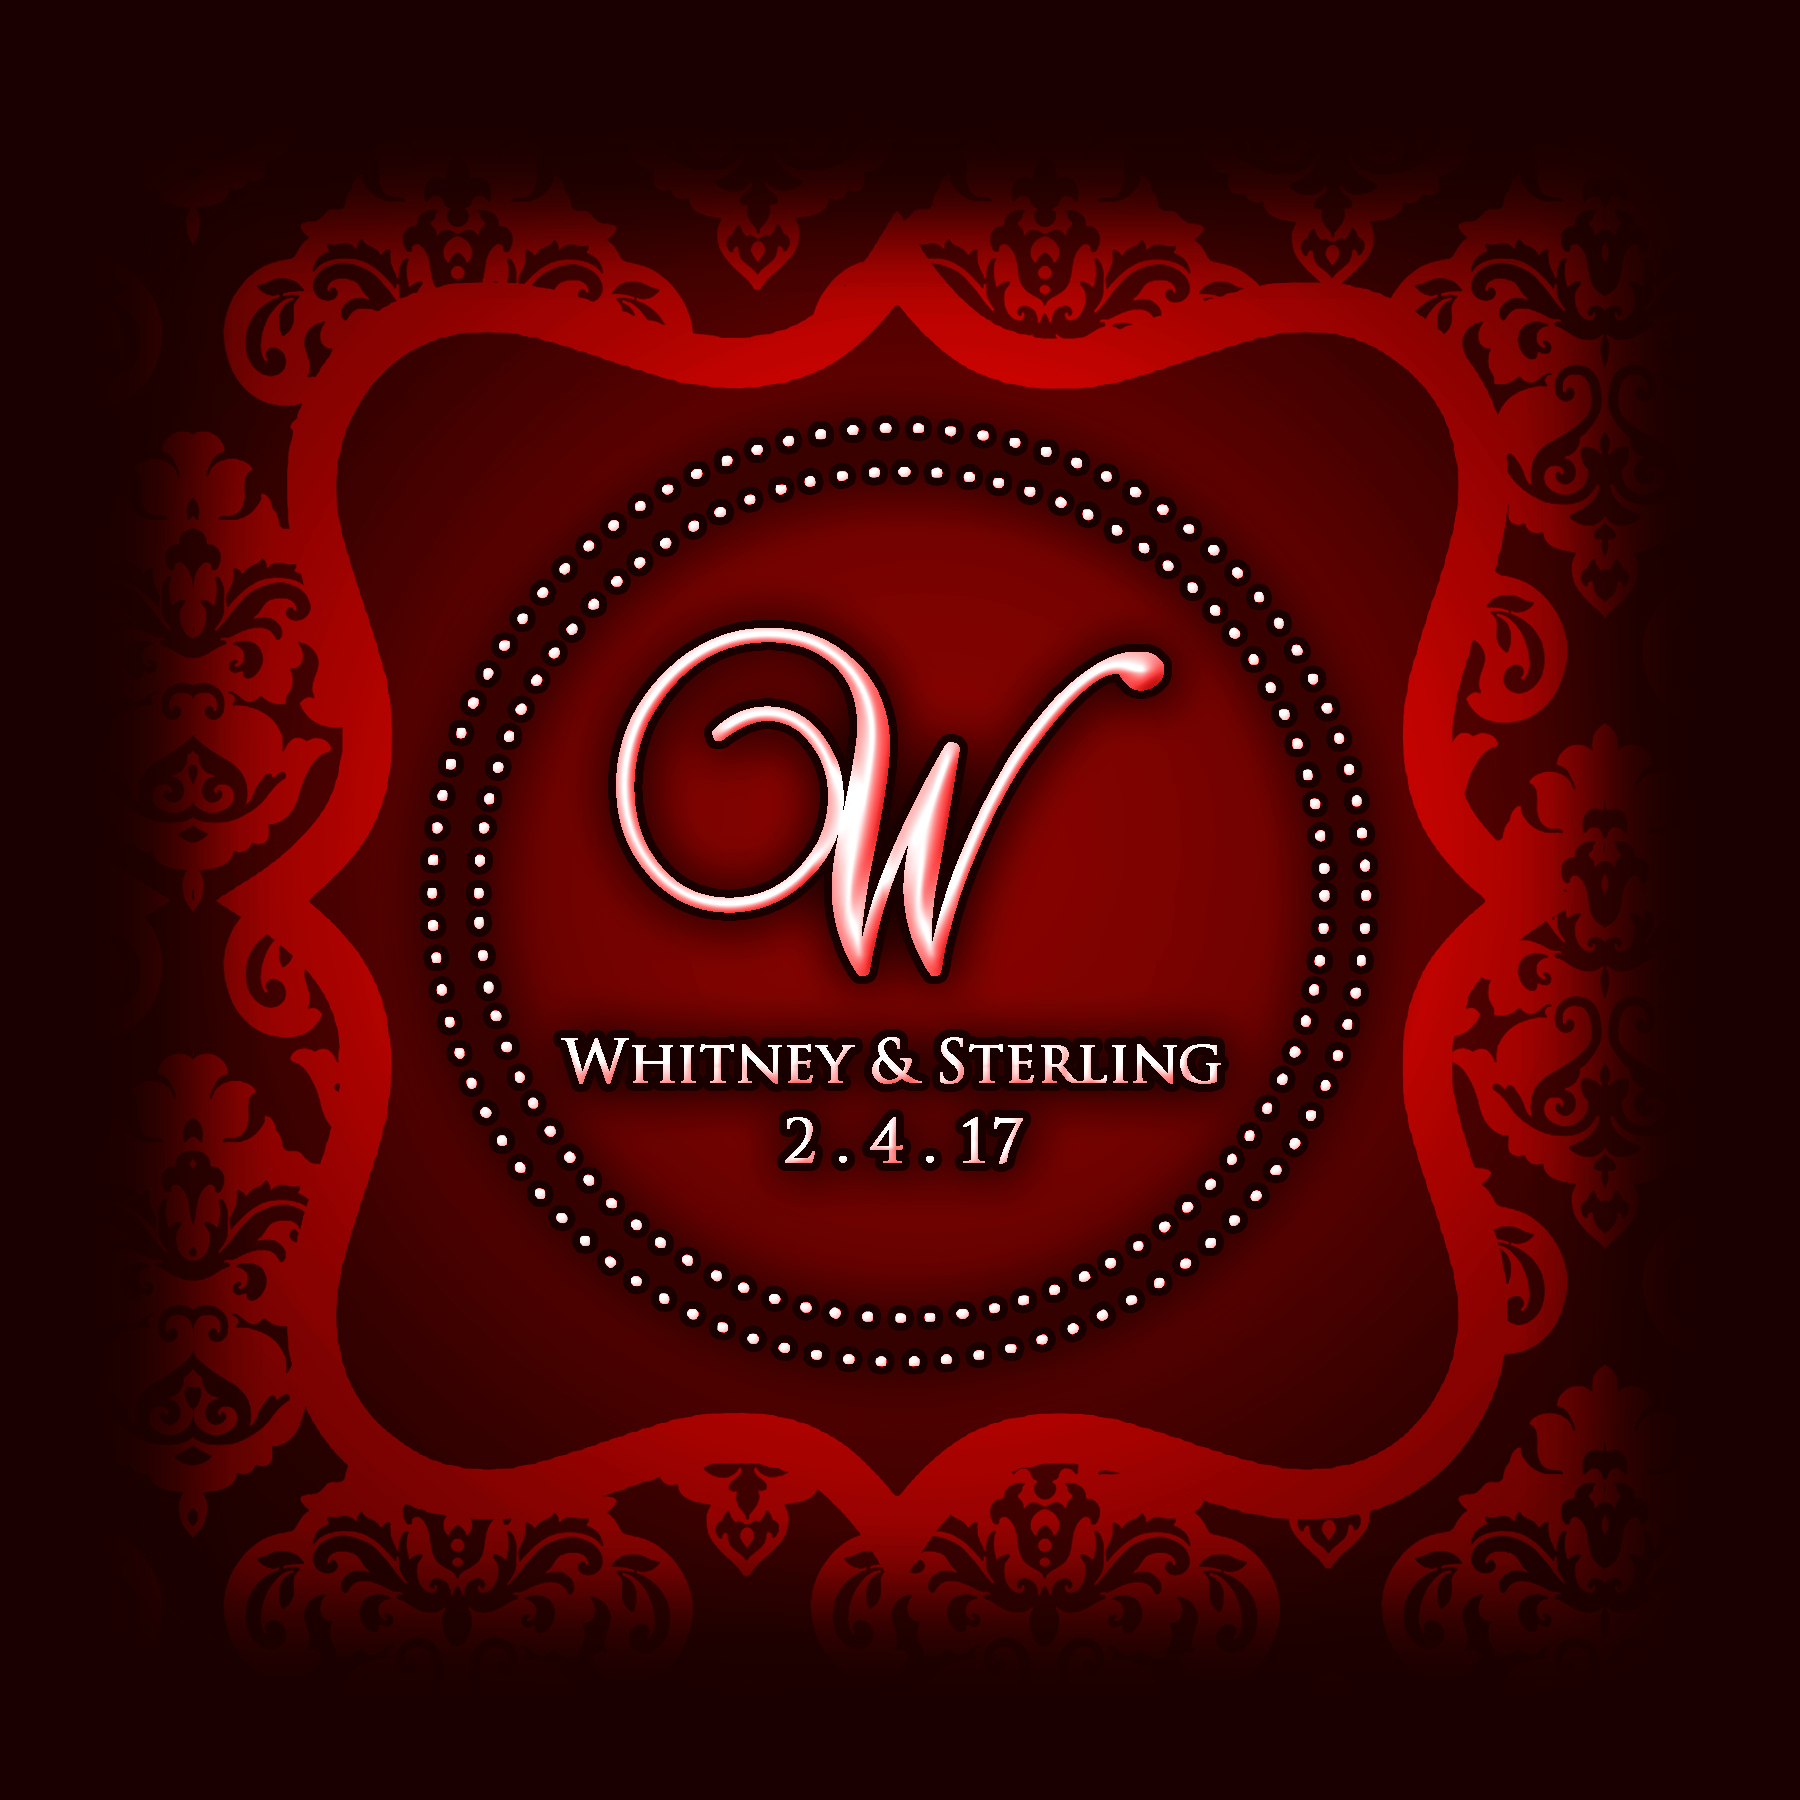 WHITNEYandSTERLING6monogram.jpg